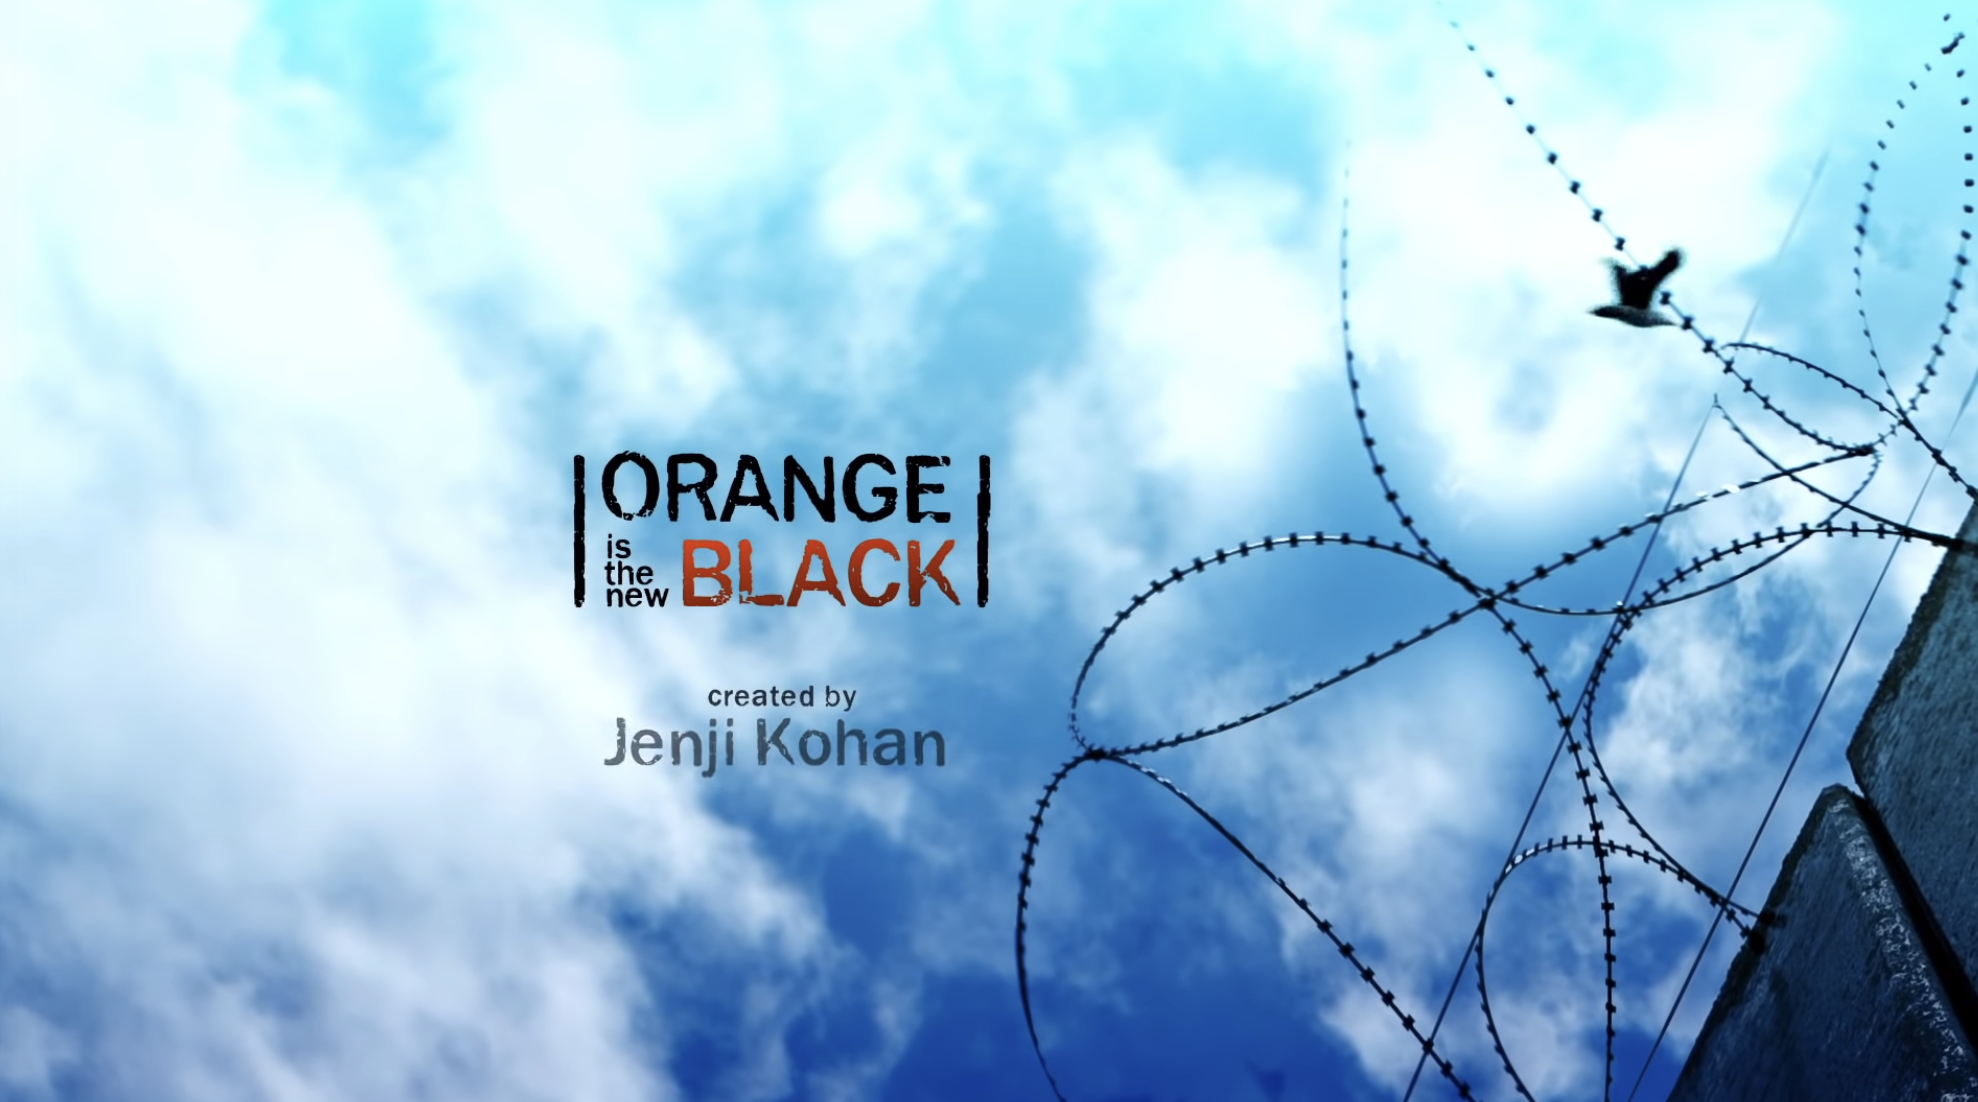 """OITNB"" title card — which is the title in the sky over a prison yard."